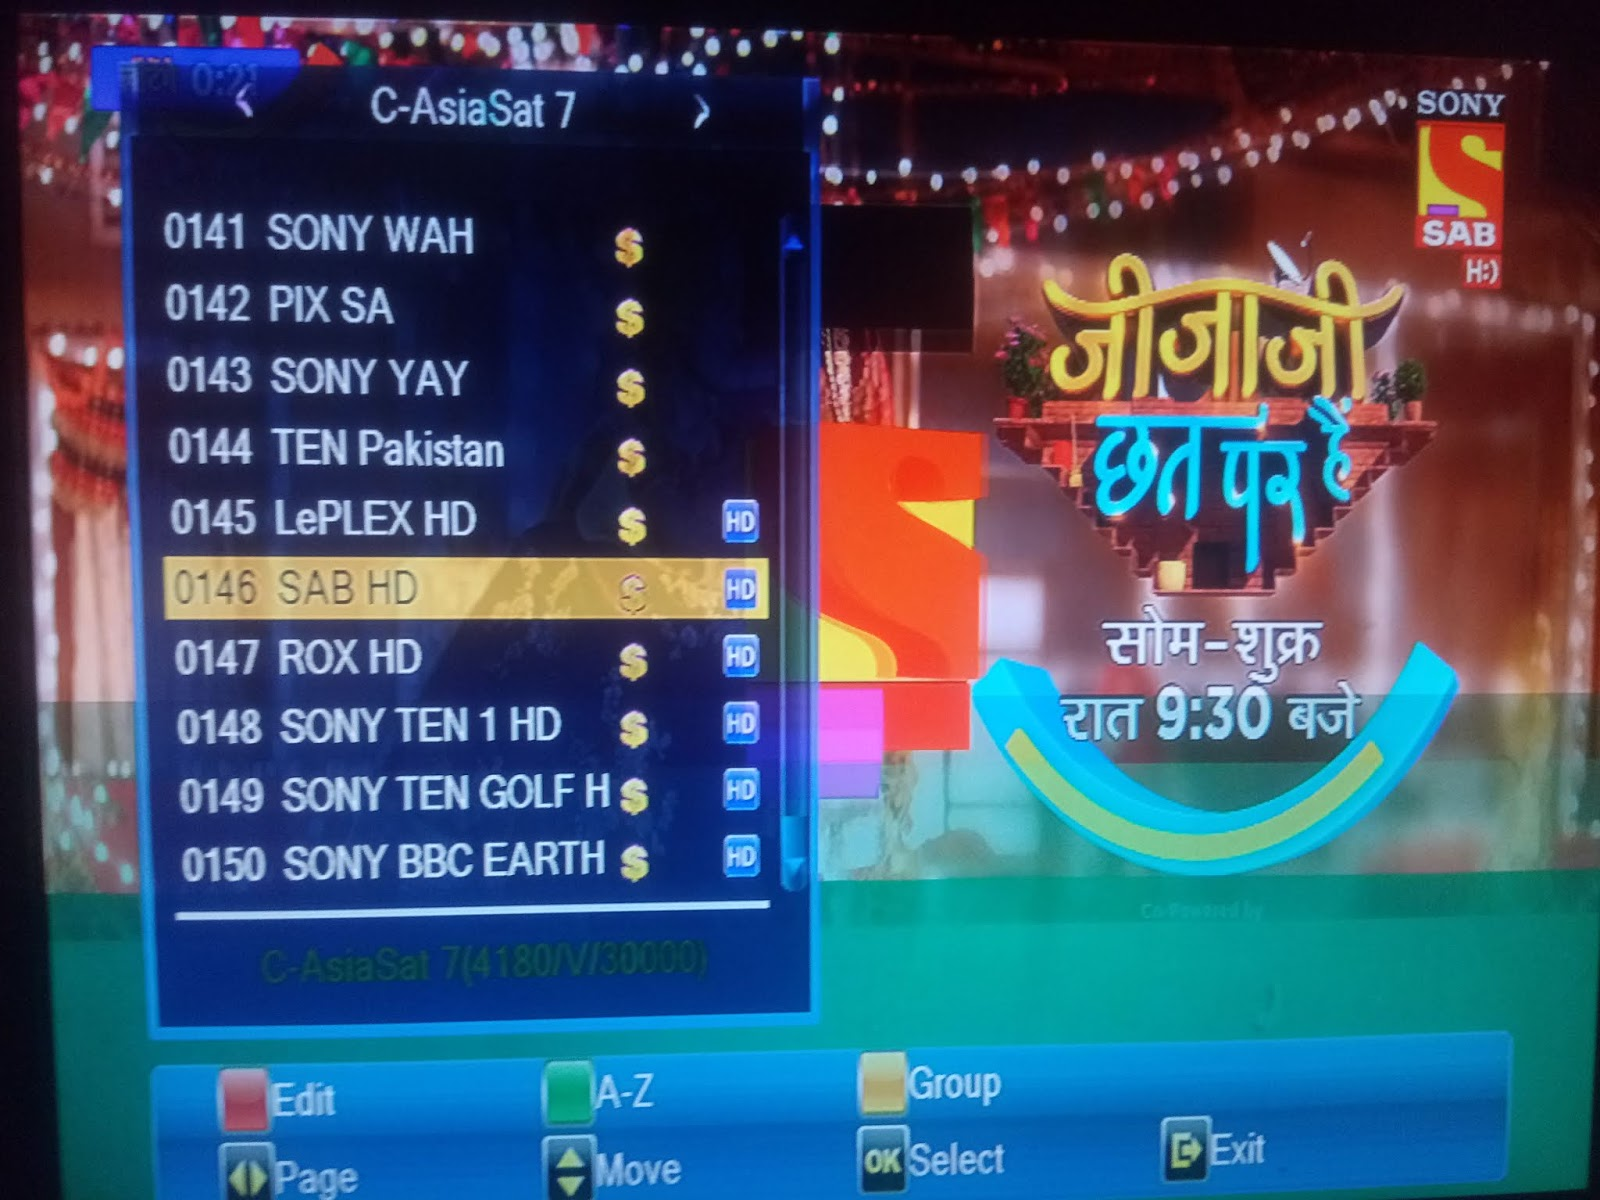 ALI 3510C HW.102.02.999 NEW SOFTWARE SONY NETWORK OK 7 JULY  HANGING AND VIRUS PROBLEM SOLVED